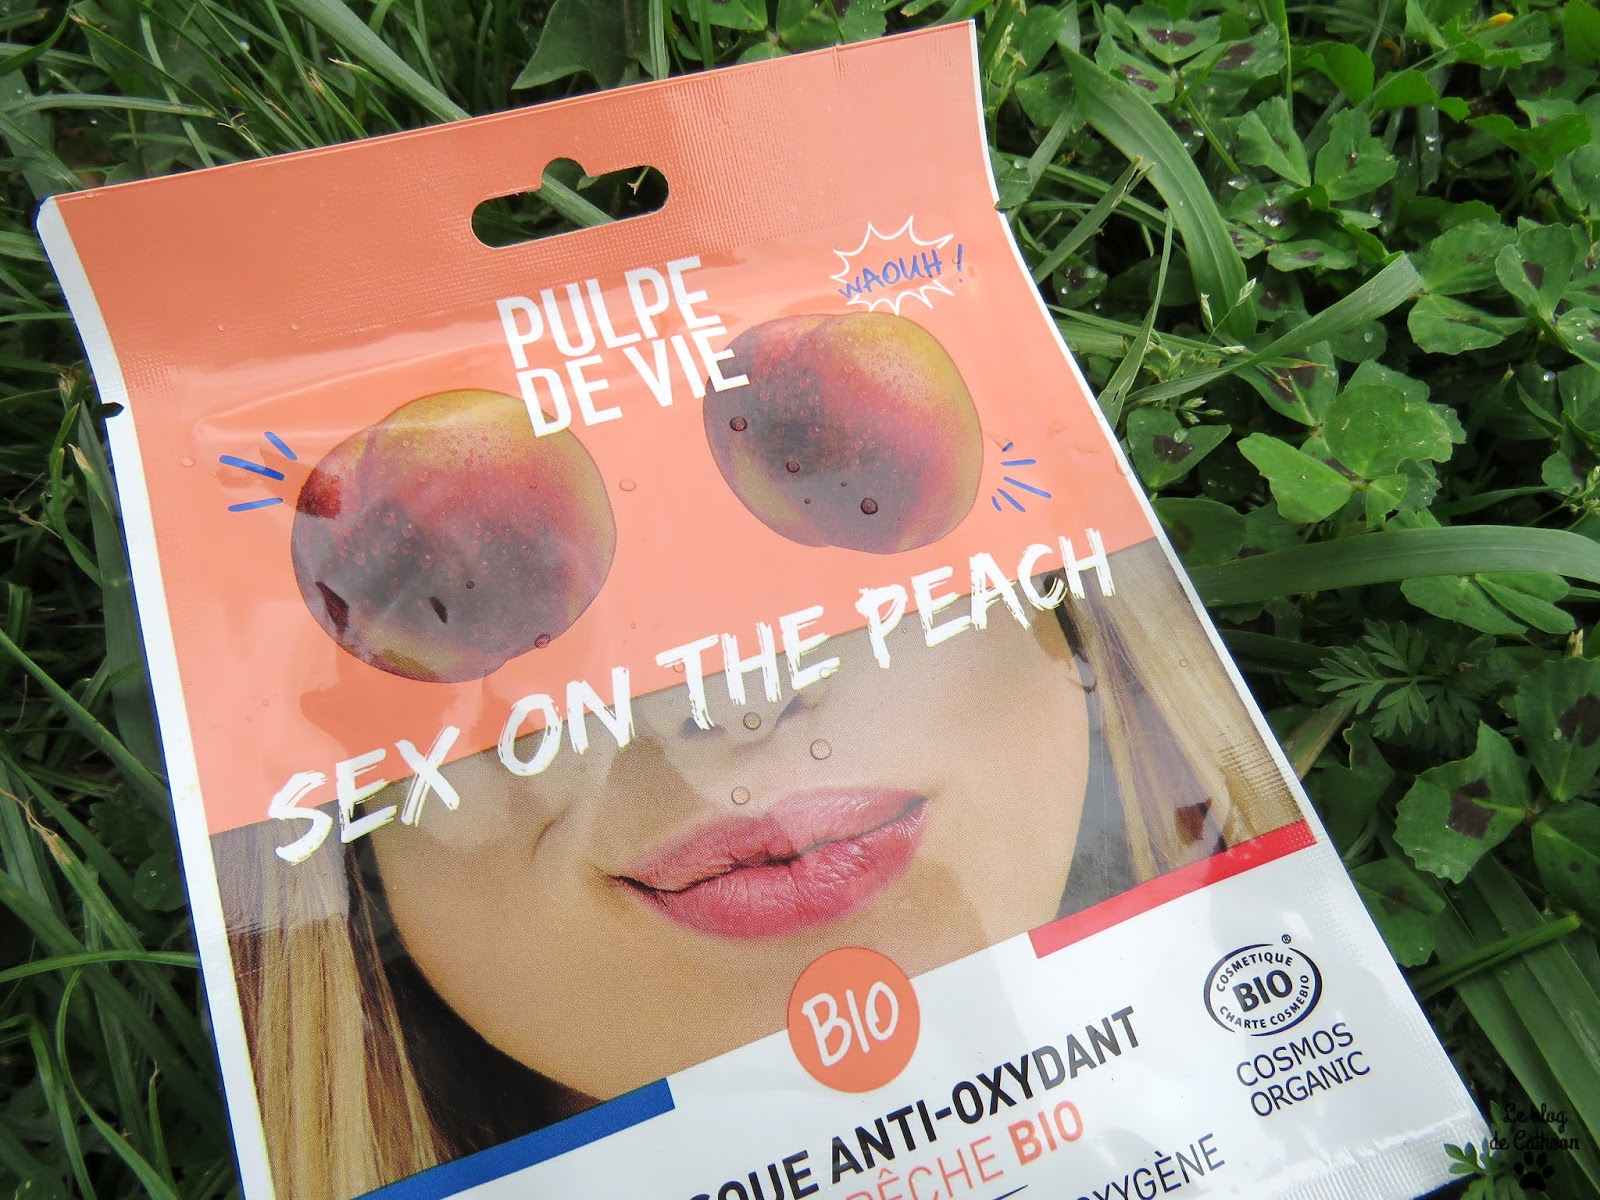 Sex on the Peach - Masque Anti-Oxydant à la Pêche Bio - Pulpe de Vie